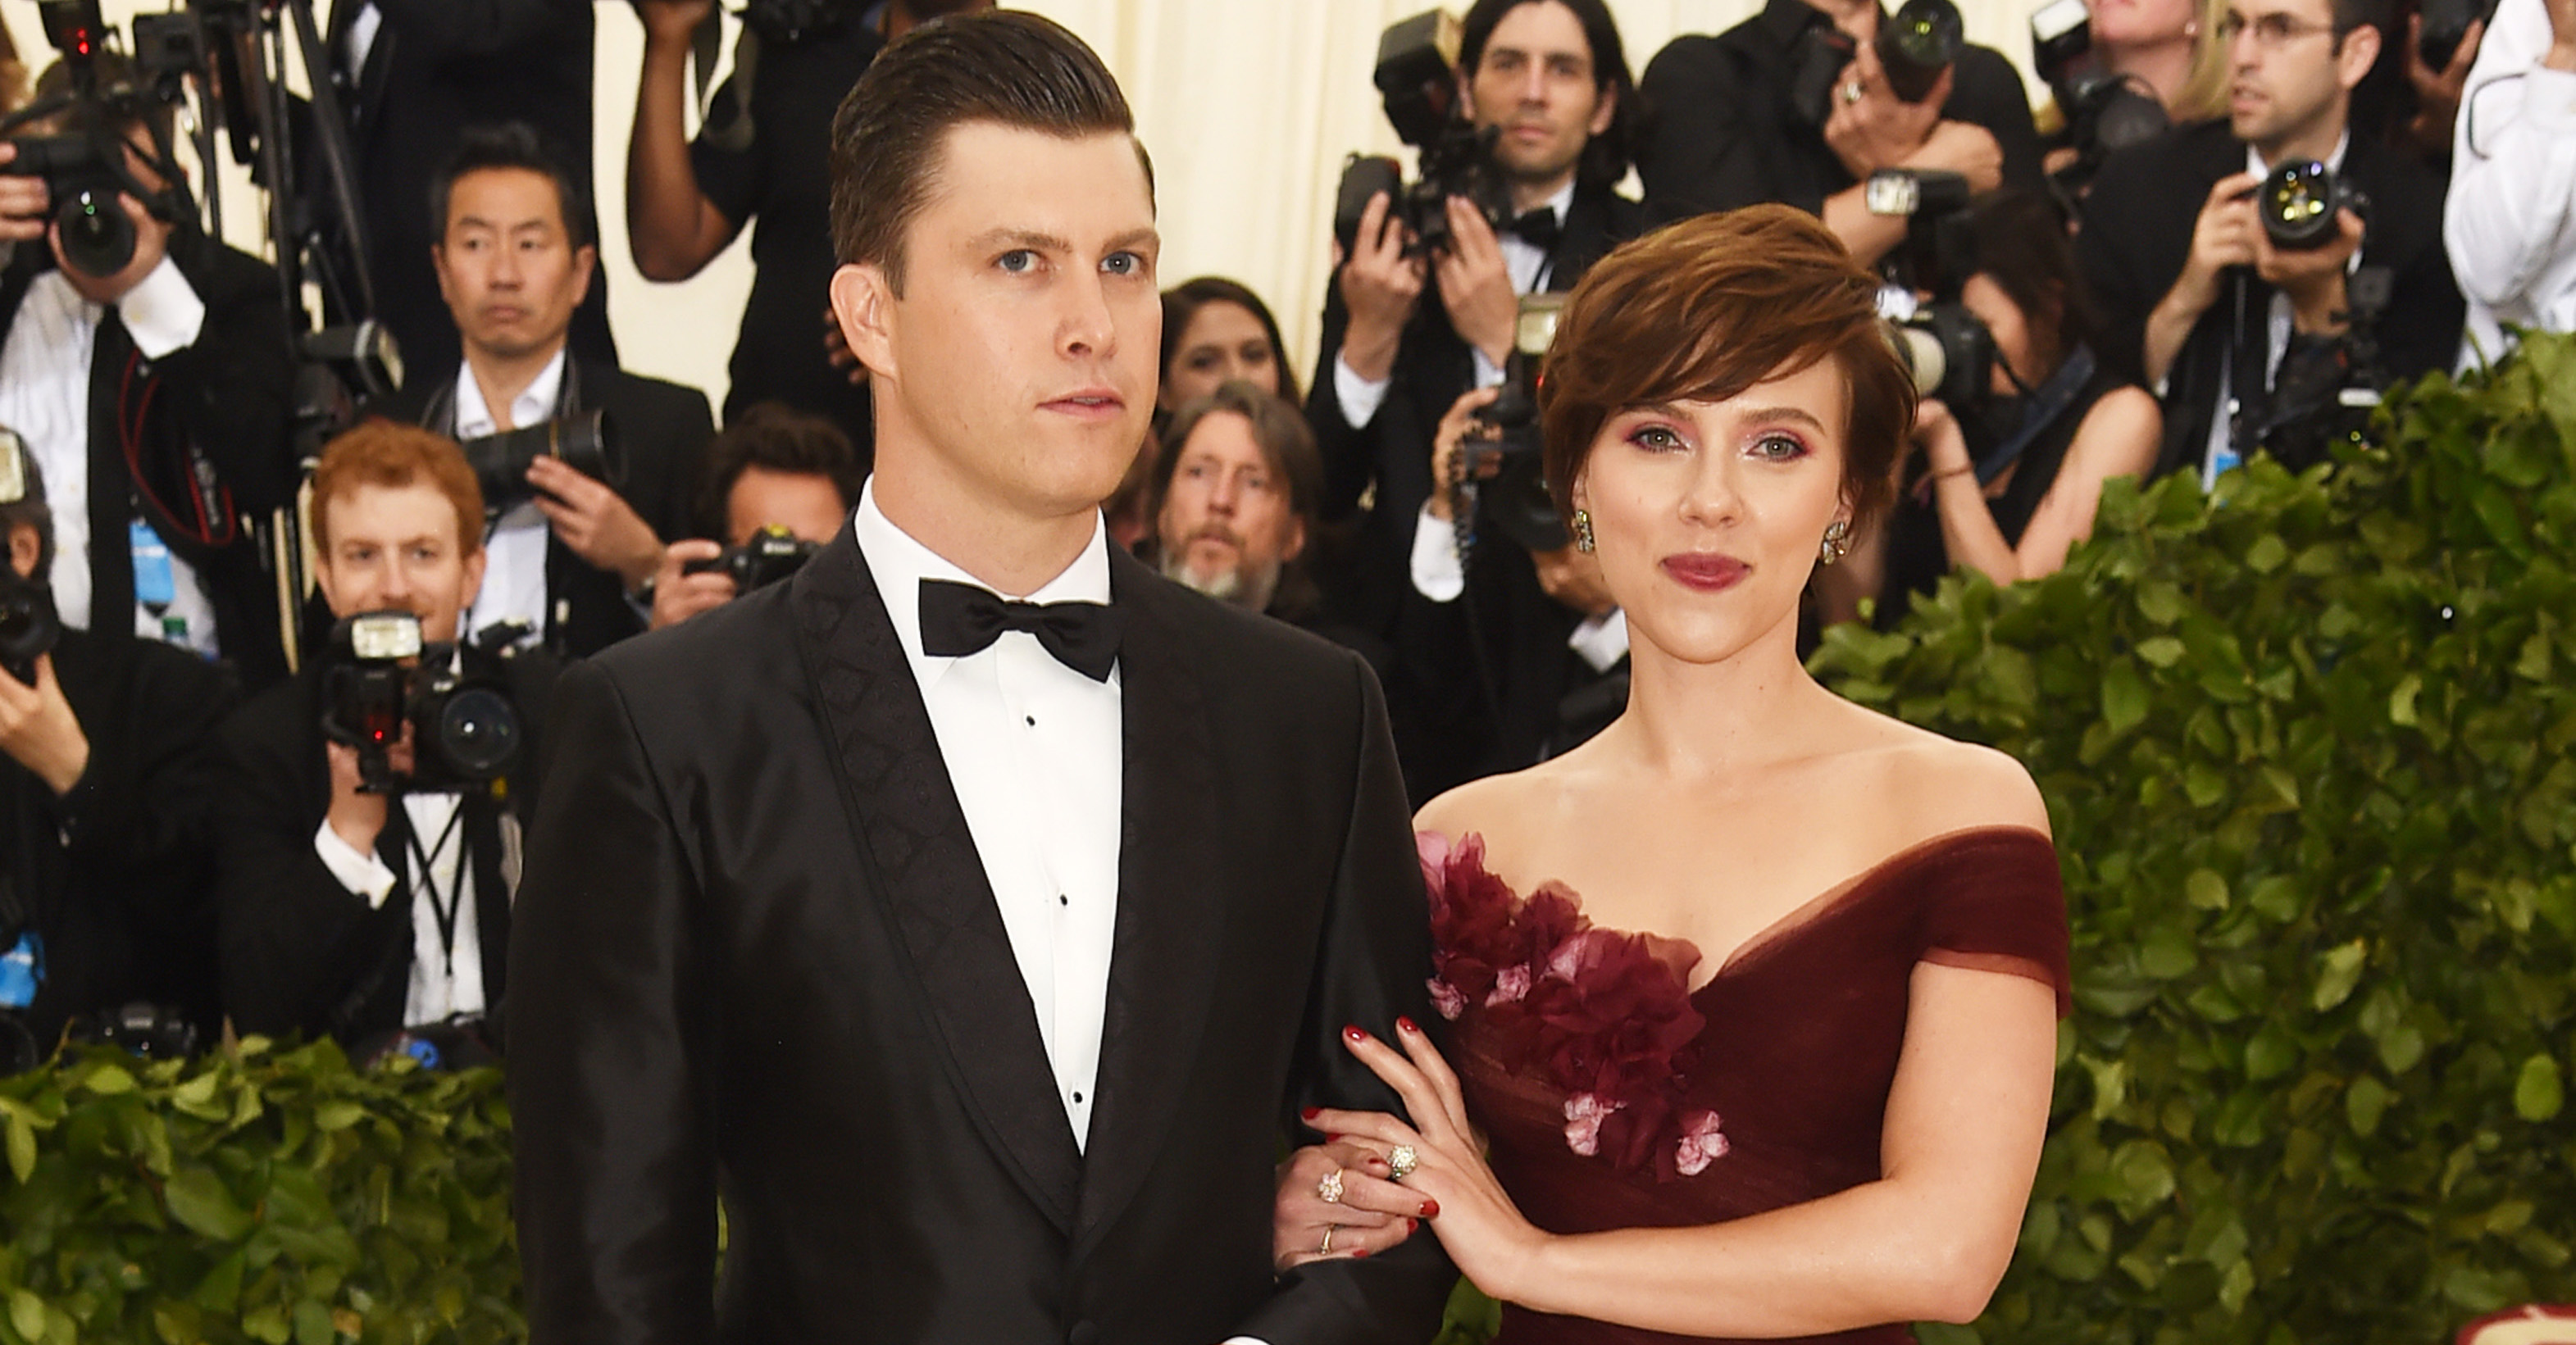 Colin Jost and Scarlett Johansson attend the Heavenly Bodies: Fashion & The Catholic Imagination Costume Institute Gala at The Metropolitan Museum of Art on May 7, 2018 in New York City. (Photo by Jamie McCarthy/Getty Images)